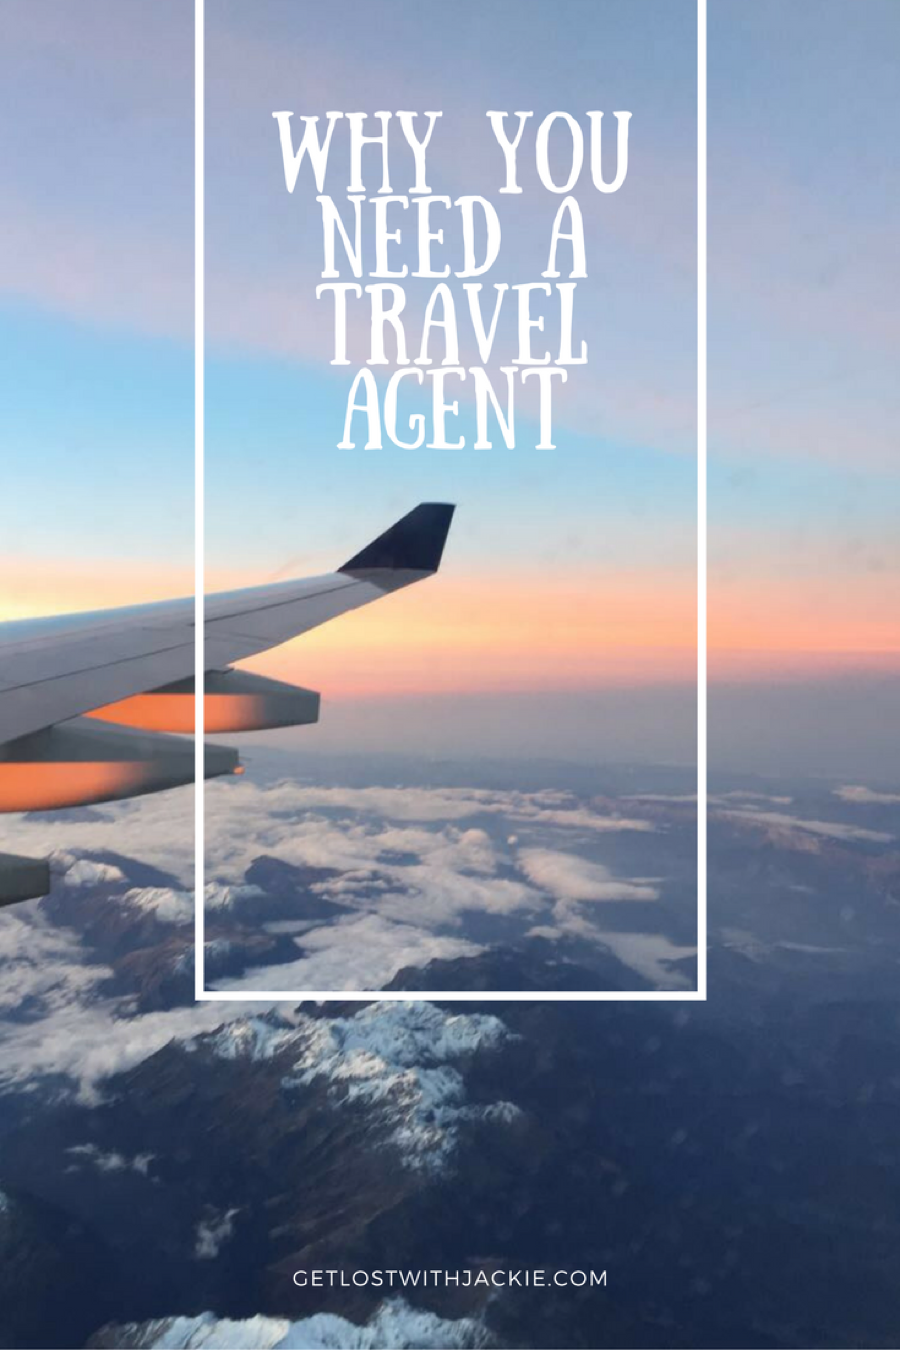 Why You Need A Travel Agent  Get Lost With Jackie. Solar Power For Apartments Nevada Coaches Llc. Servpro Mold Removal Cost Cheap Sit Up Bench. Childrens Research Institute. Leak Detection Seattle Magnum Porsche Cayenne. Investment Broker Firms School Of Health Care. Stigler Health And Wellness Phase Lock Loop. Accelerated Online Bachelor Degree Programs. Nurse Practitioner Jobs Mississippi